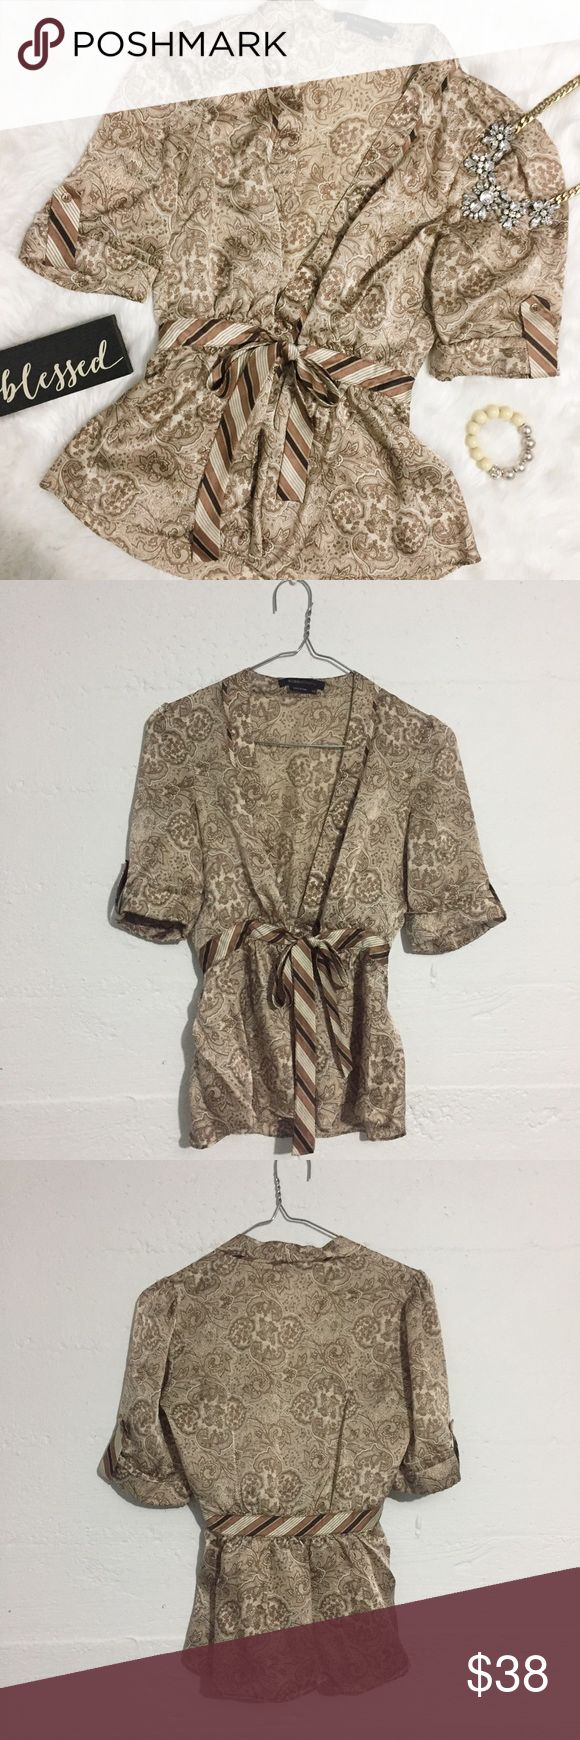 BCBG Max Azria 100% Silk Paisley Tie Front Blouse BCBG Max Azria 100% Silk Paisley Tie Front Blouse would be perfect paired with a Cali underneath and high shine jewelry. Open to offers. No trades. BCBGMaxAzria Tops Blouses